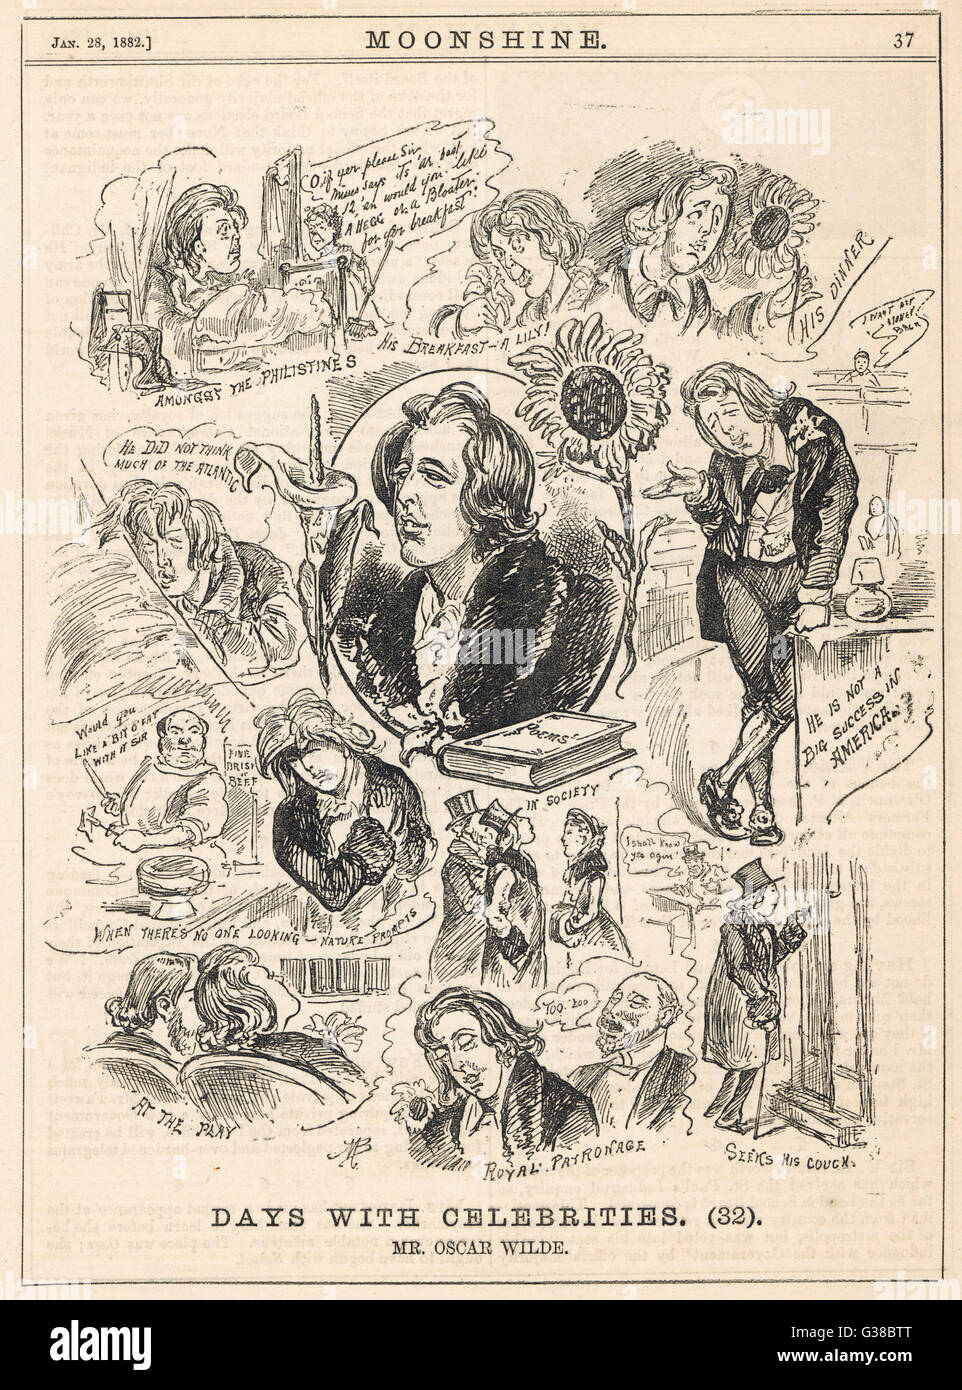 OSCAR WILDE - some satirical comments         Date: 1856-1900 - Stock Image